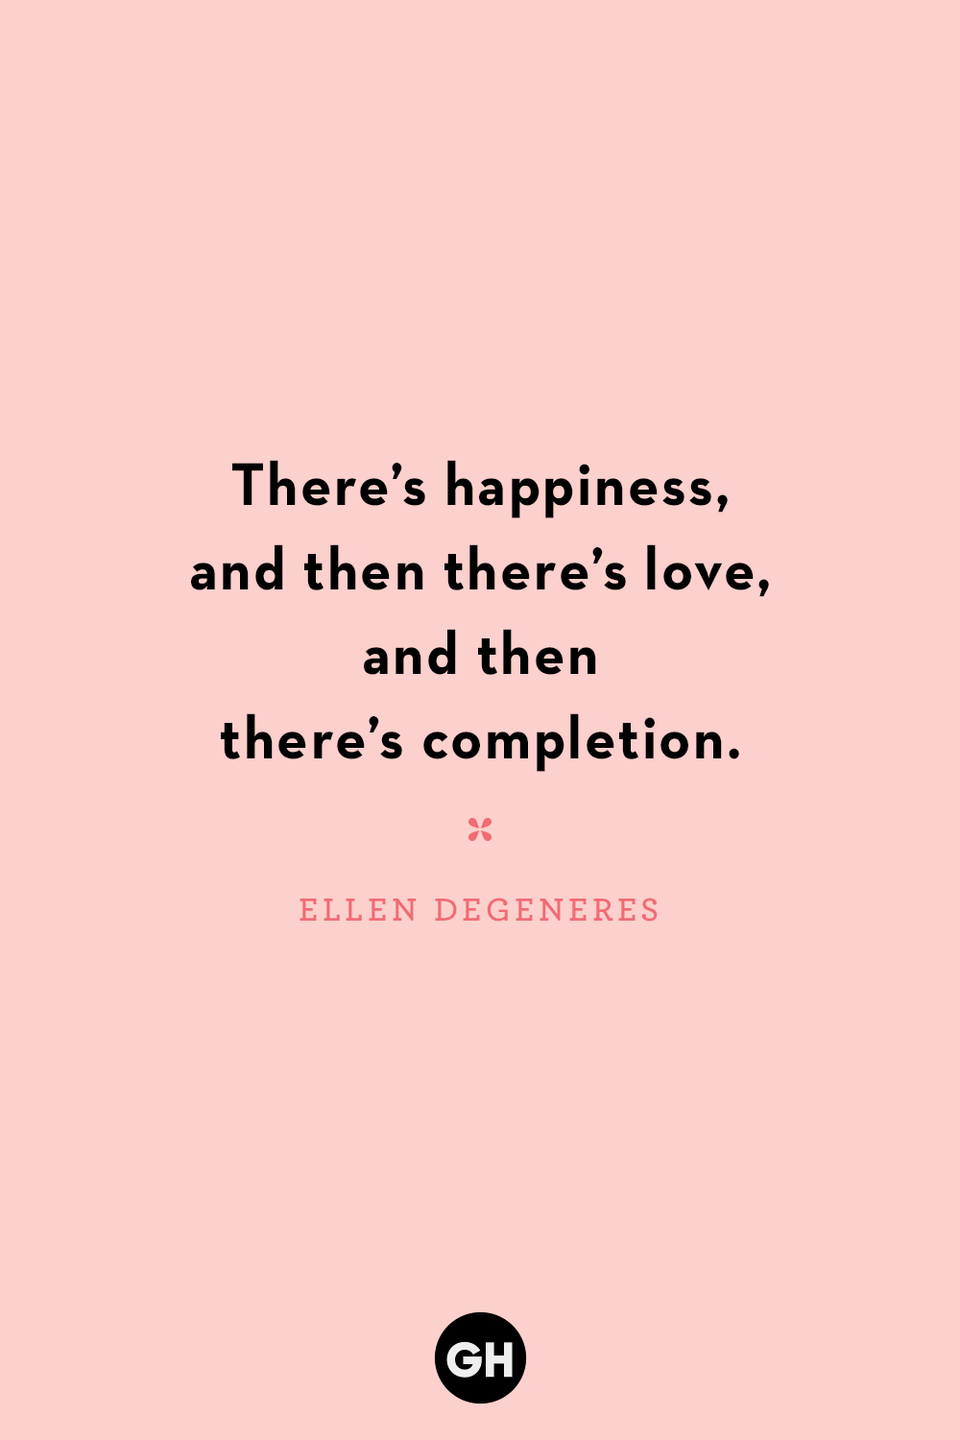 <p>There's happiness, and then there's love and then there's completion.</p>